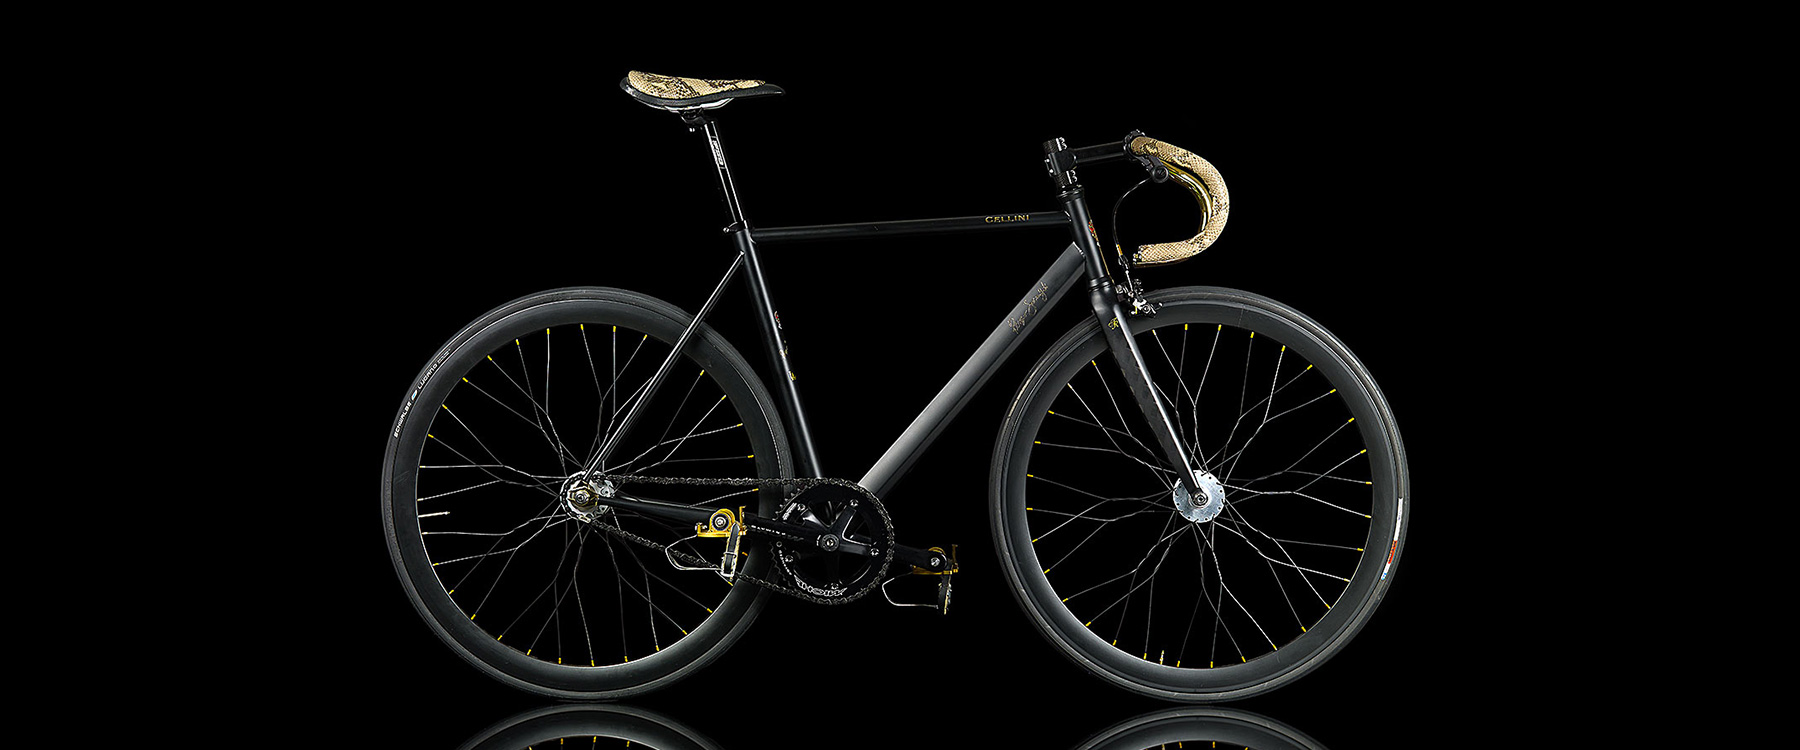 Hipster Luxury: This Over-The-Top Fixie Has 24K Gold and Snakeskin Handlebars